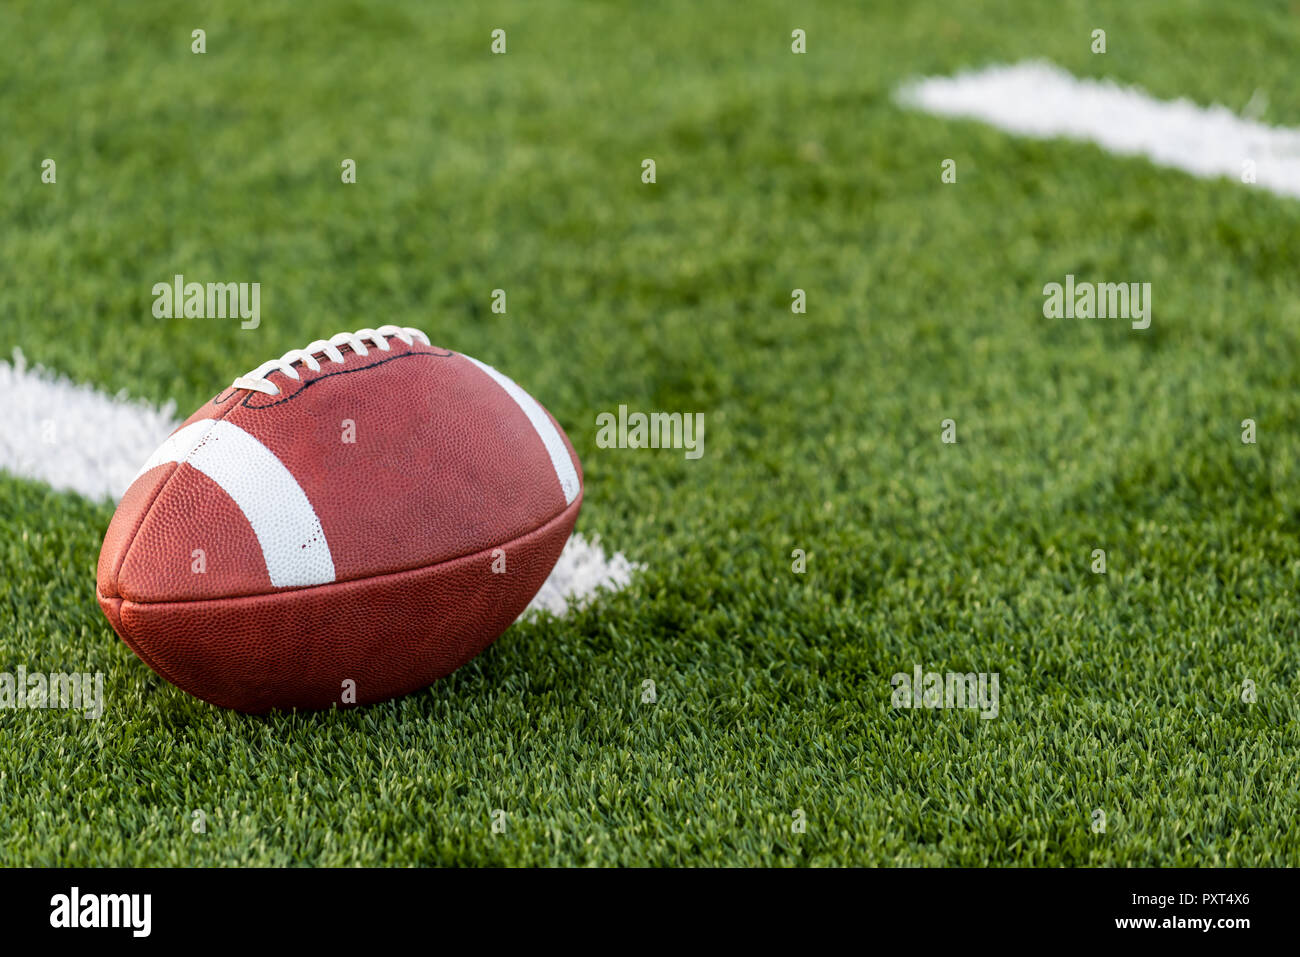 a brown leather American Football on a field - Stock Image